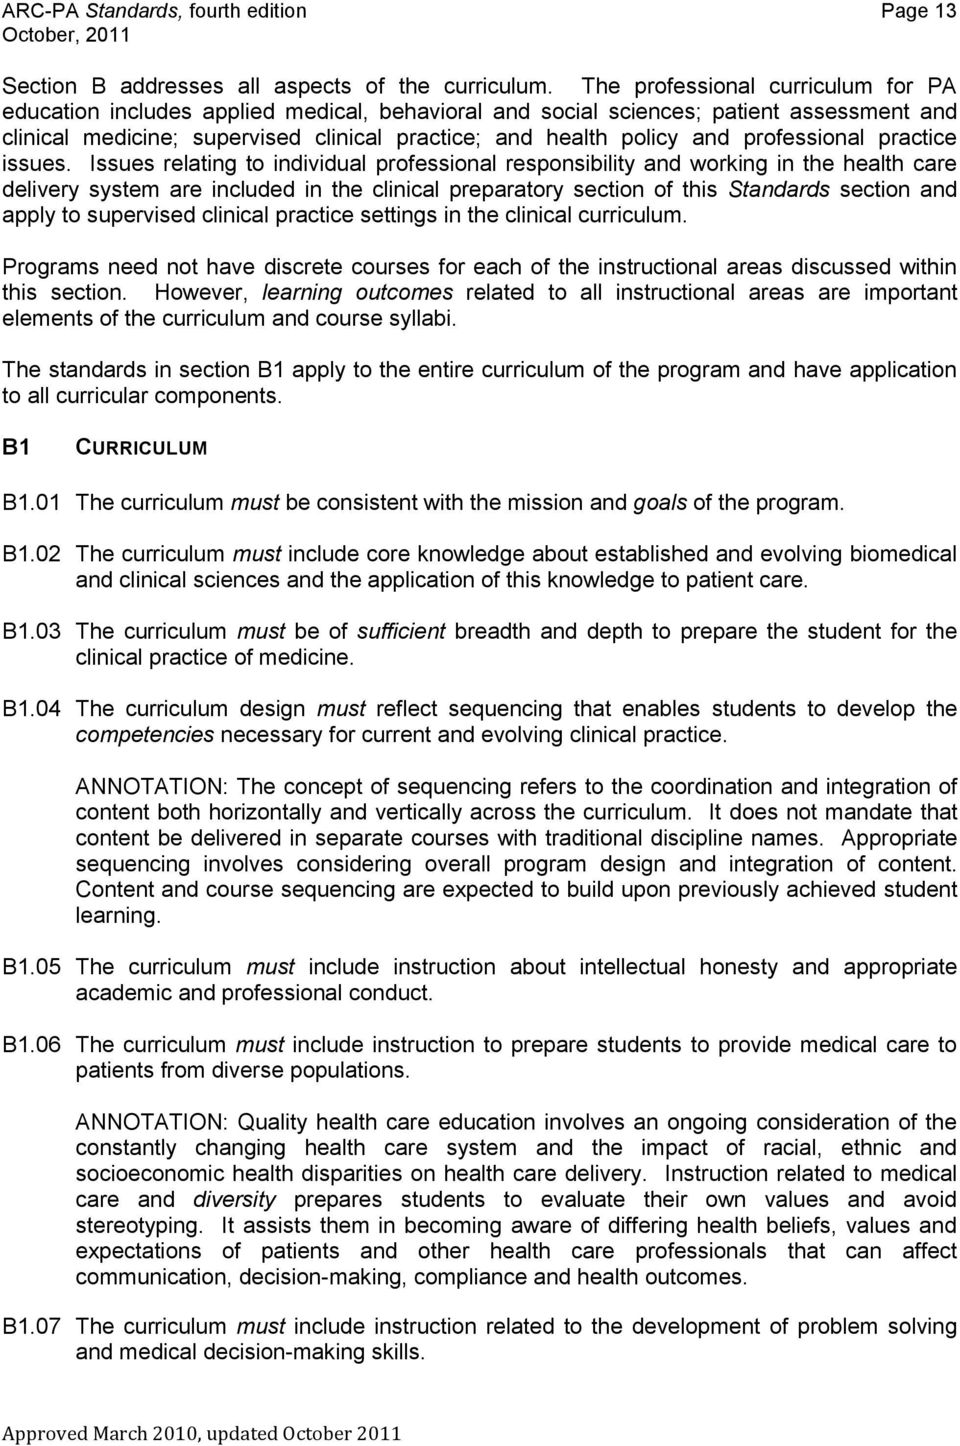 Accreditation Standards For Physician Assistant Education Pdf Free Download